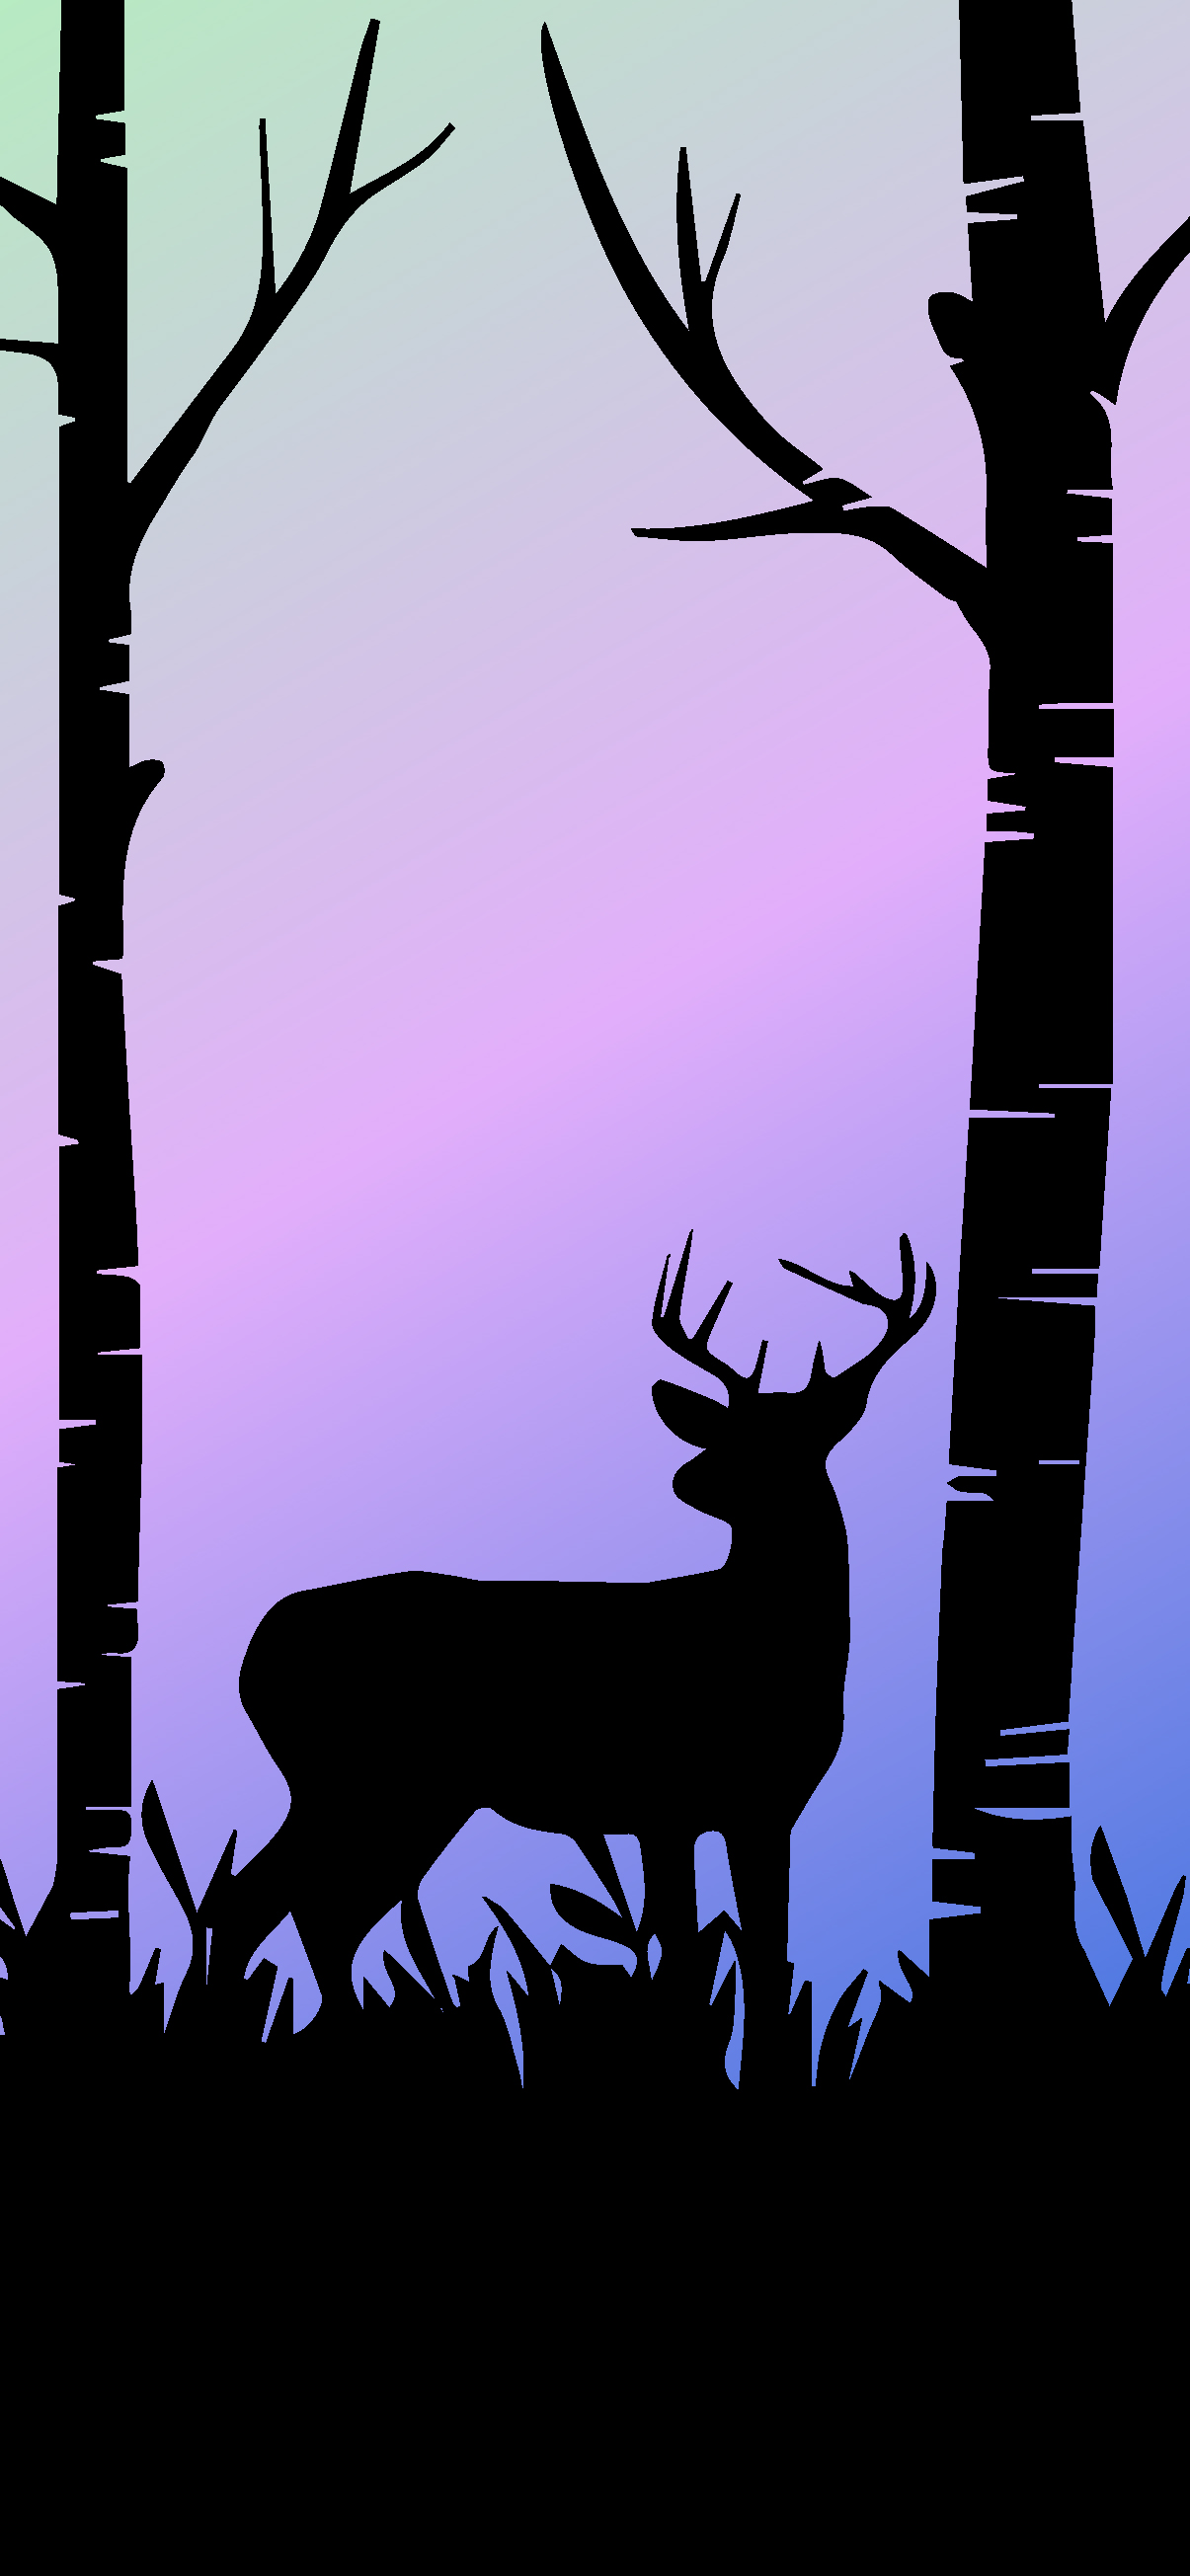 AMOLED DEER FOREST WALLPAPER IPHONE HD